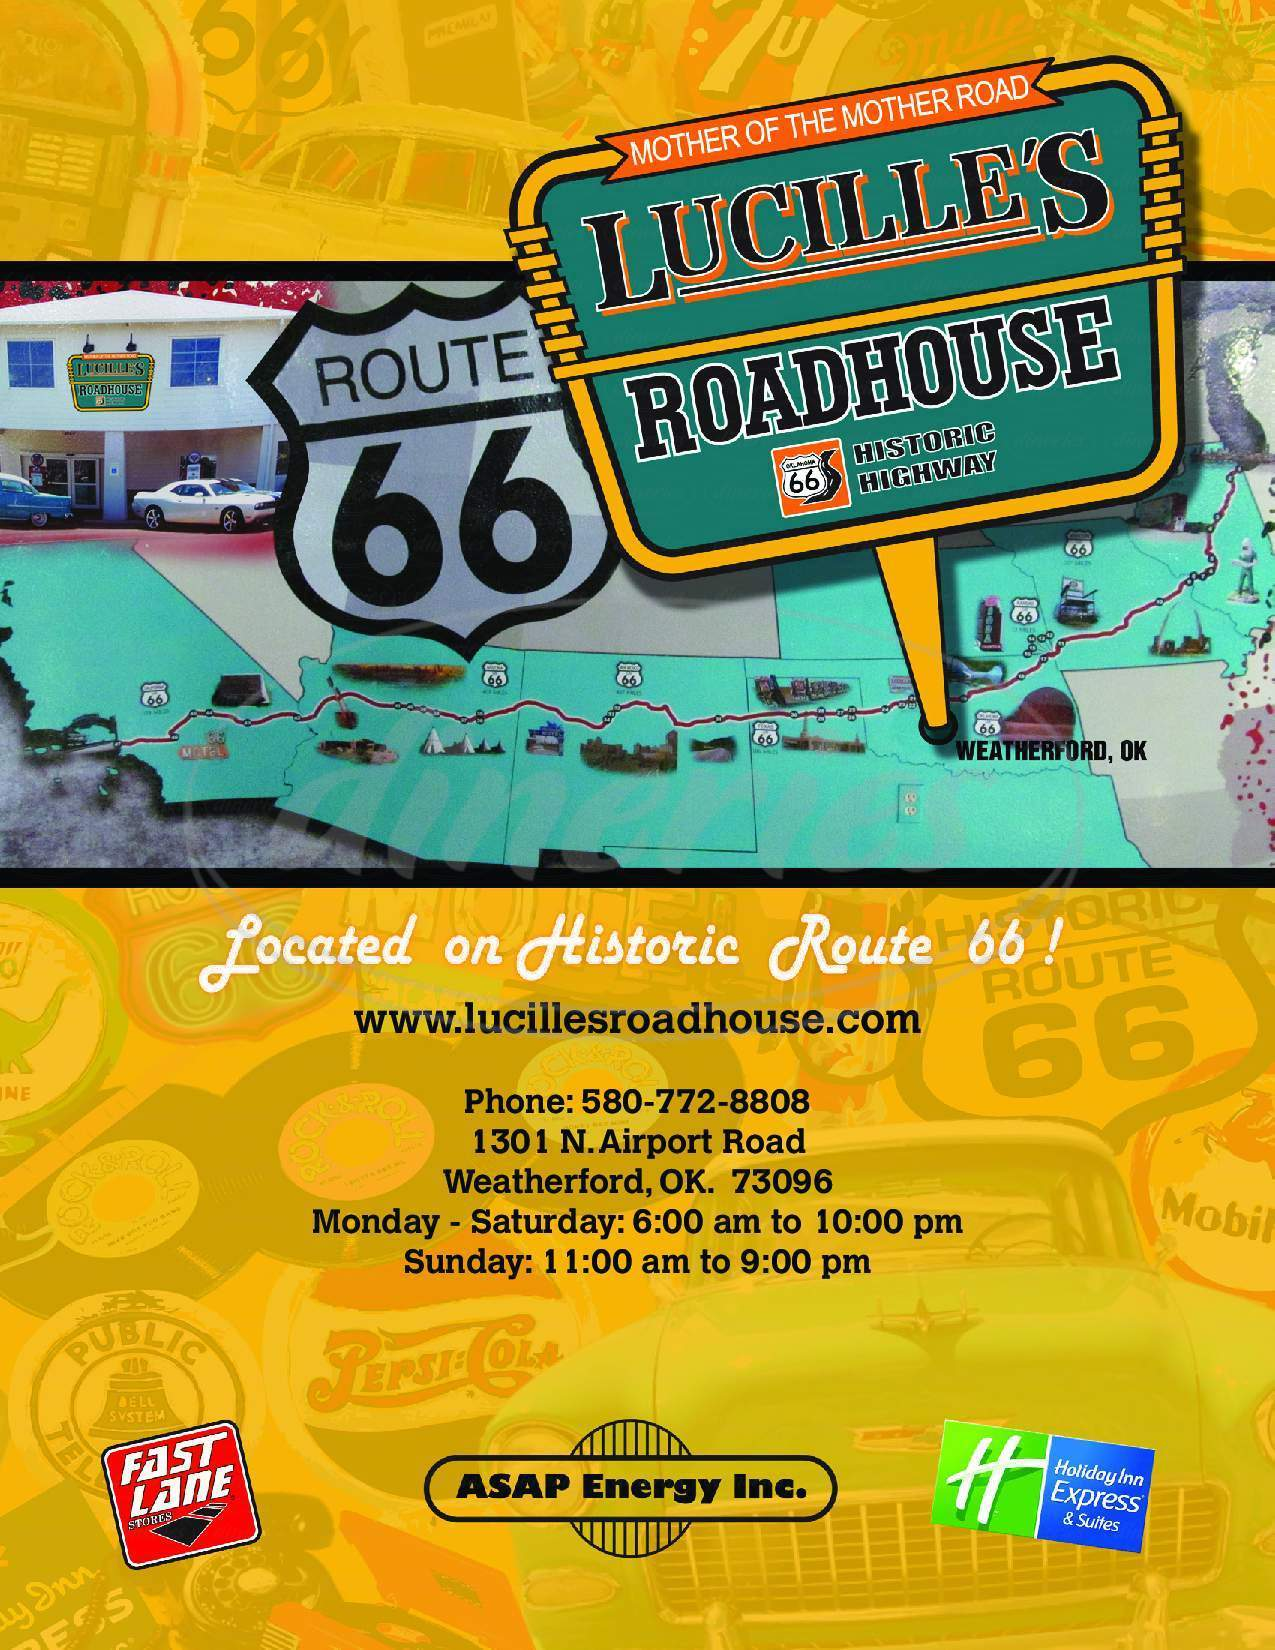 menu for Lucille's Roadhouse